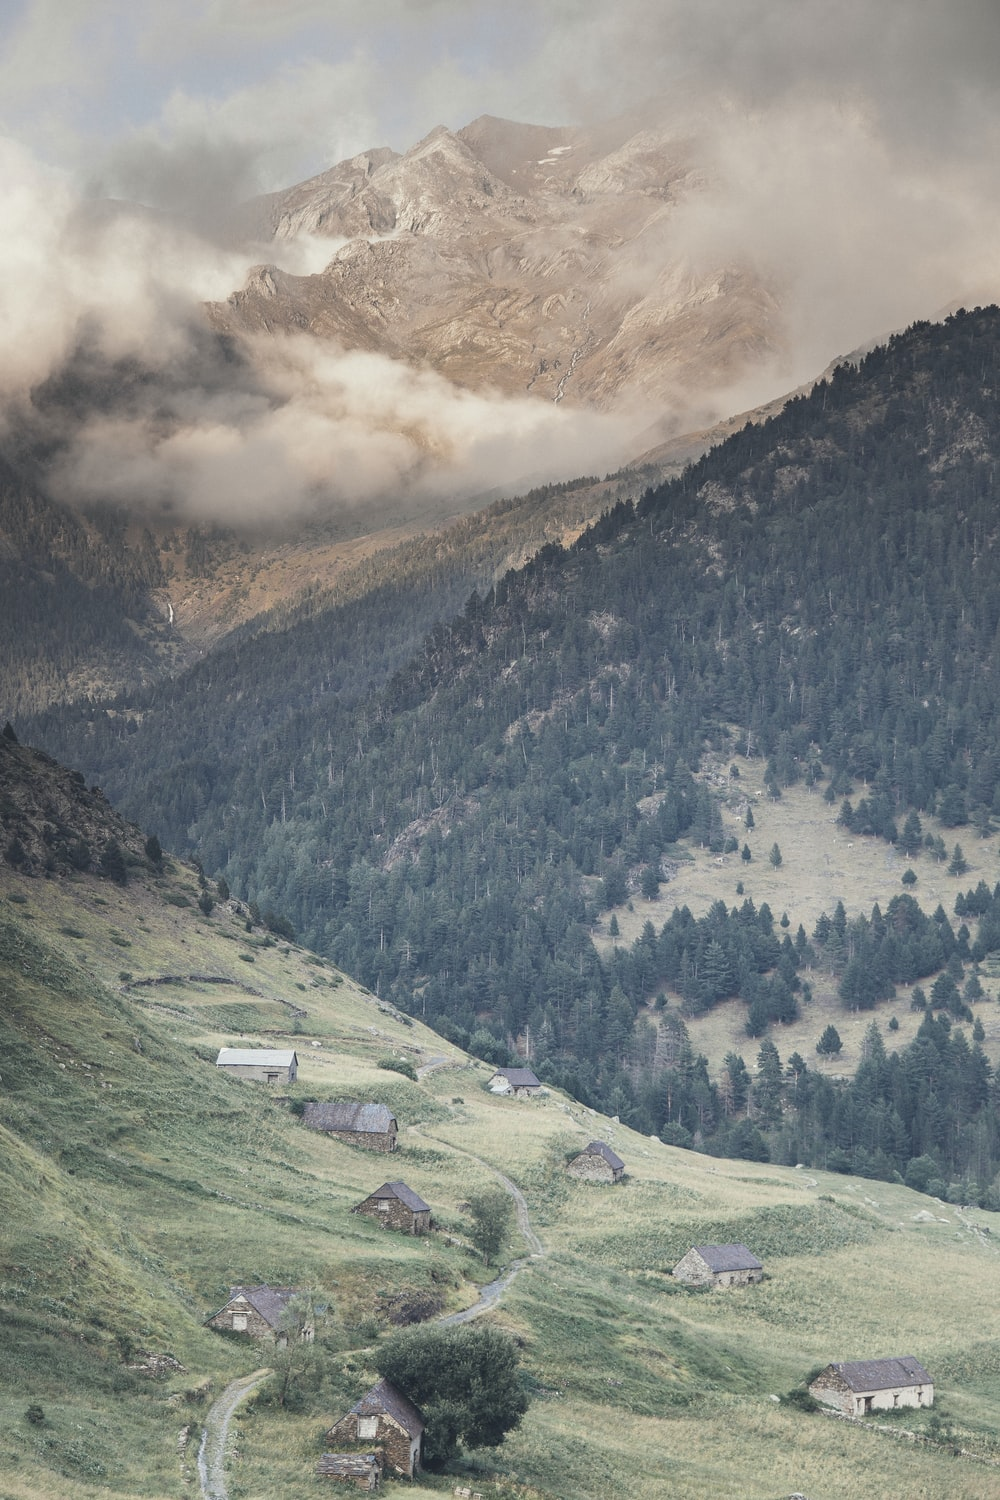 green mountains and pine trees at daytime